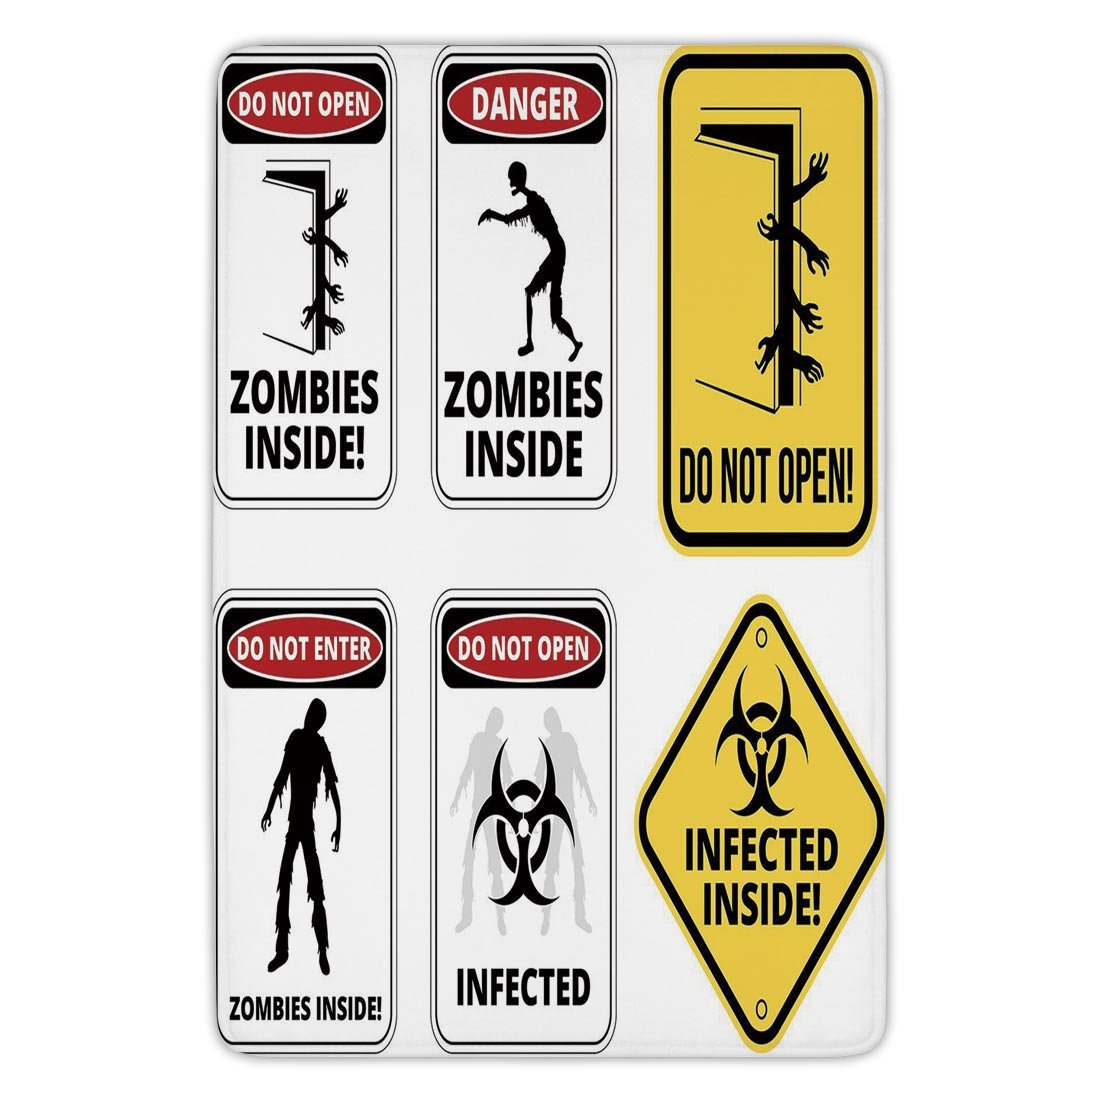 Bathroom Bath Rug Kitchen Floor Mat Carpet,Zombie Decor,Warning Signs for Evil Creatures Paranormal Construction Do Not Open Artwork,Multicolor,Flannel Microfiber Non-slip Soft Absorbent